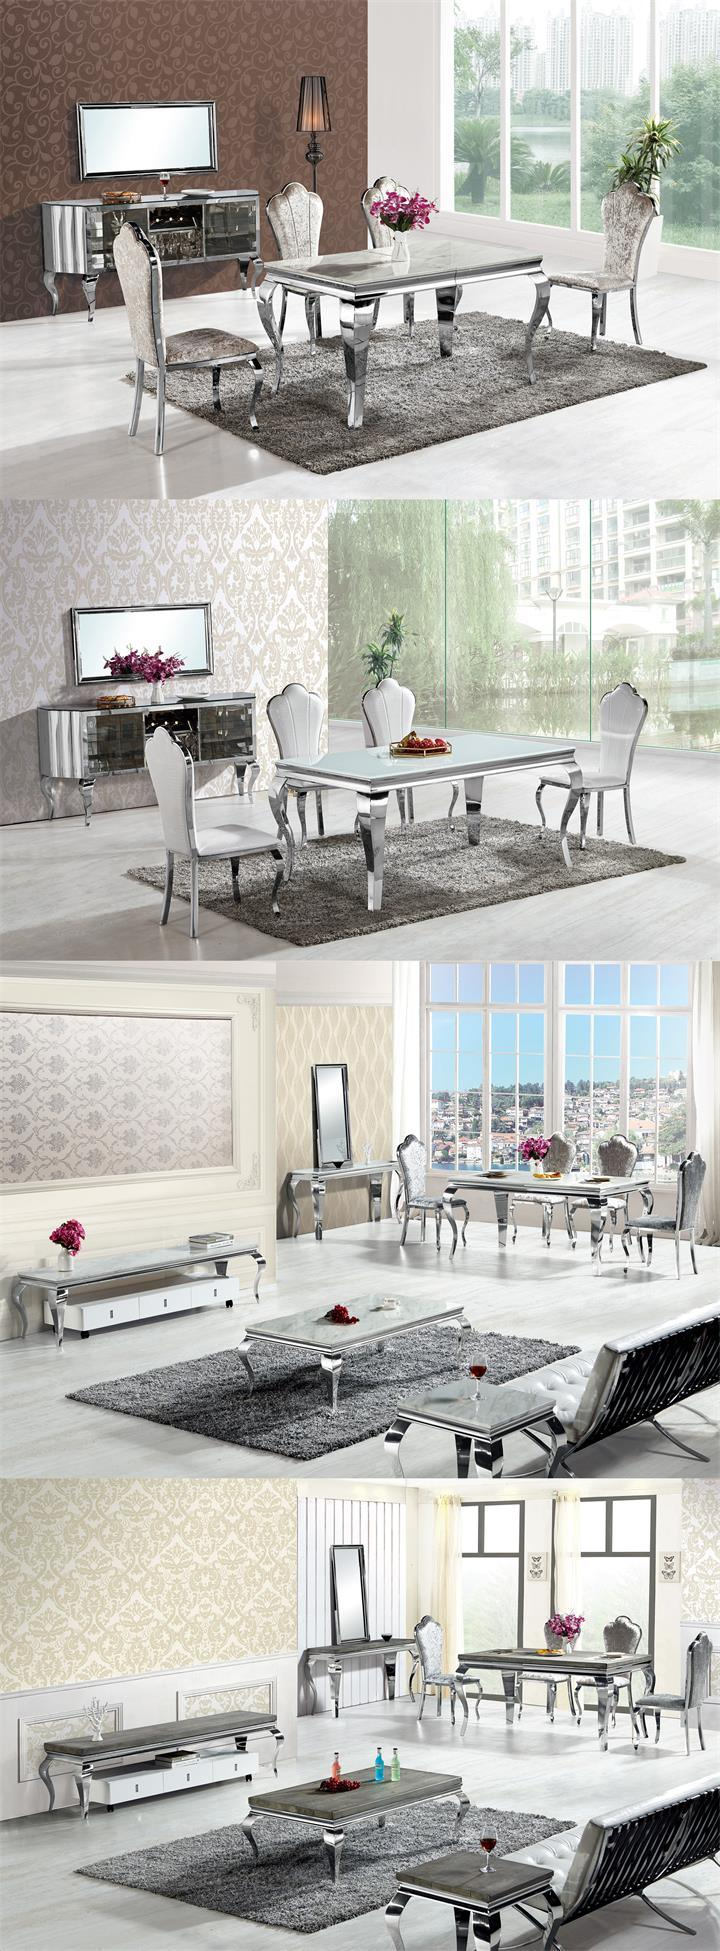 Classic Dining Room Furniture Glass/Wood/Marble Top Stainless Steel ...